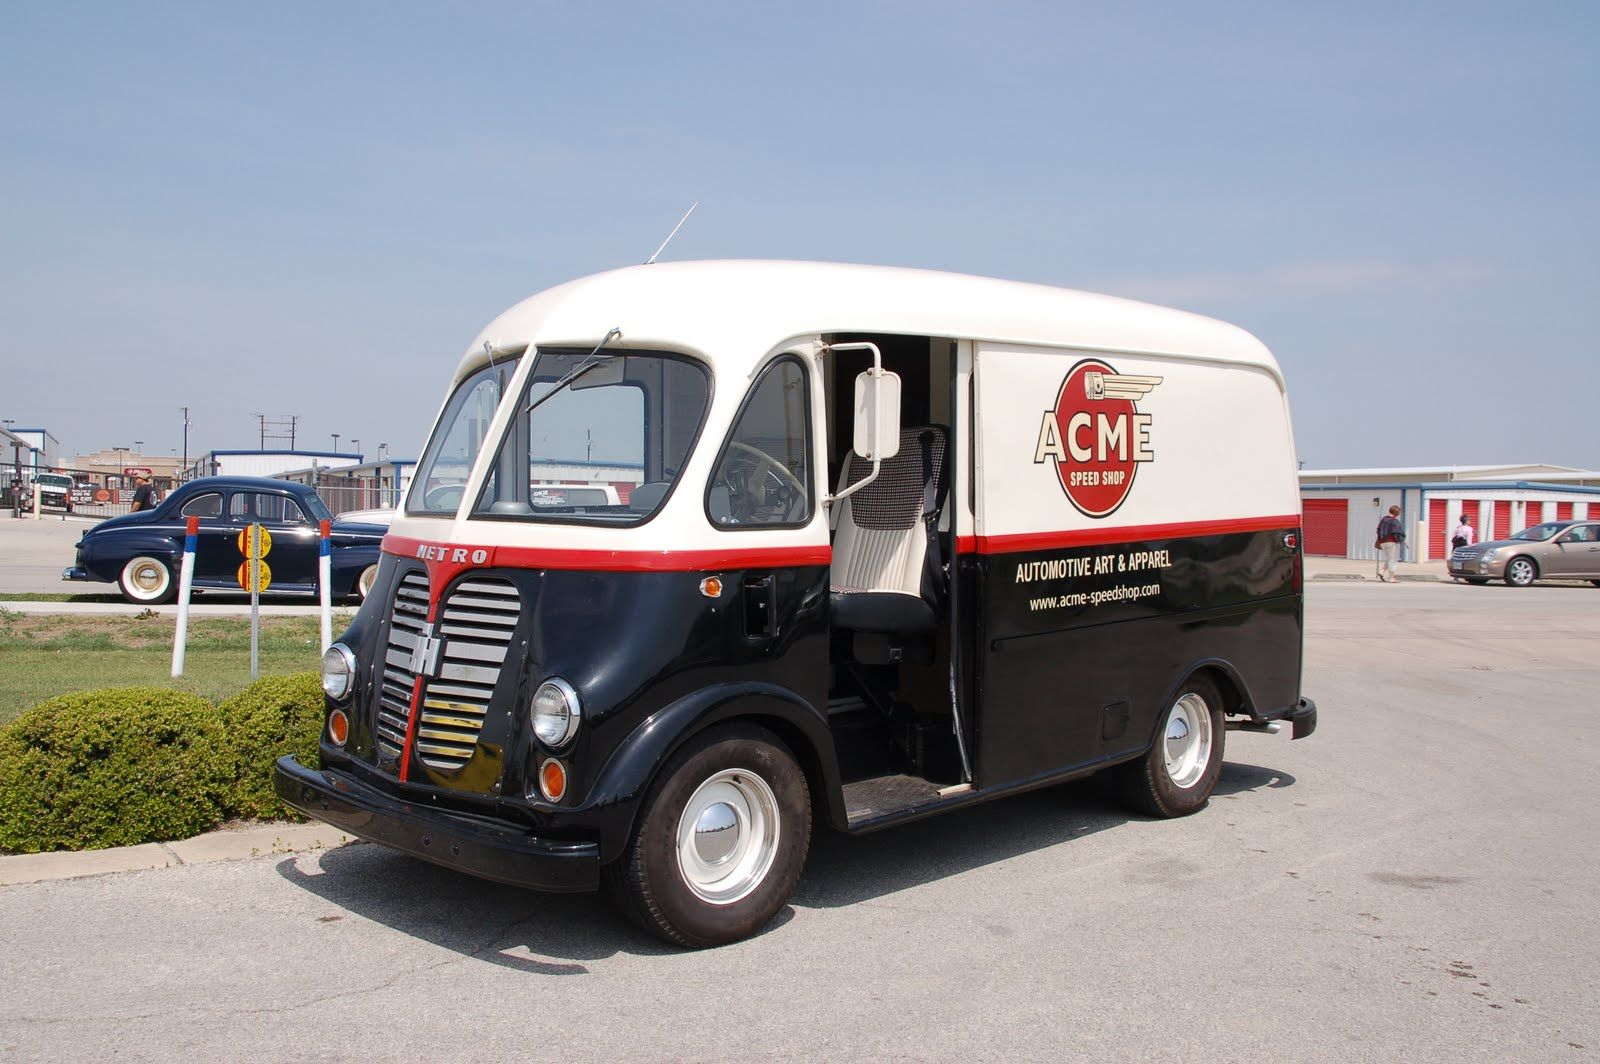 International harvester metro step van